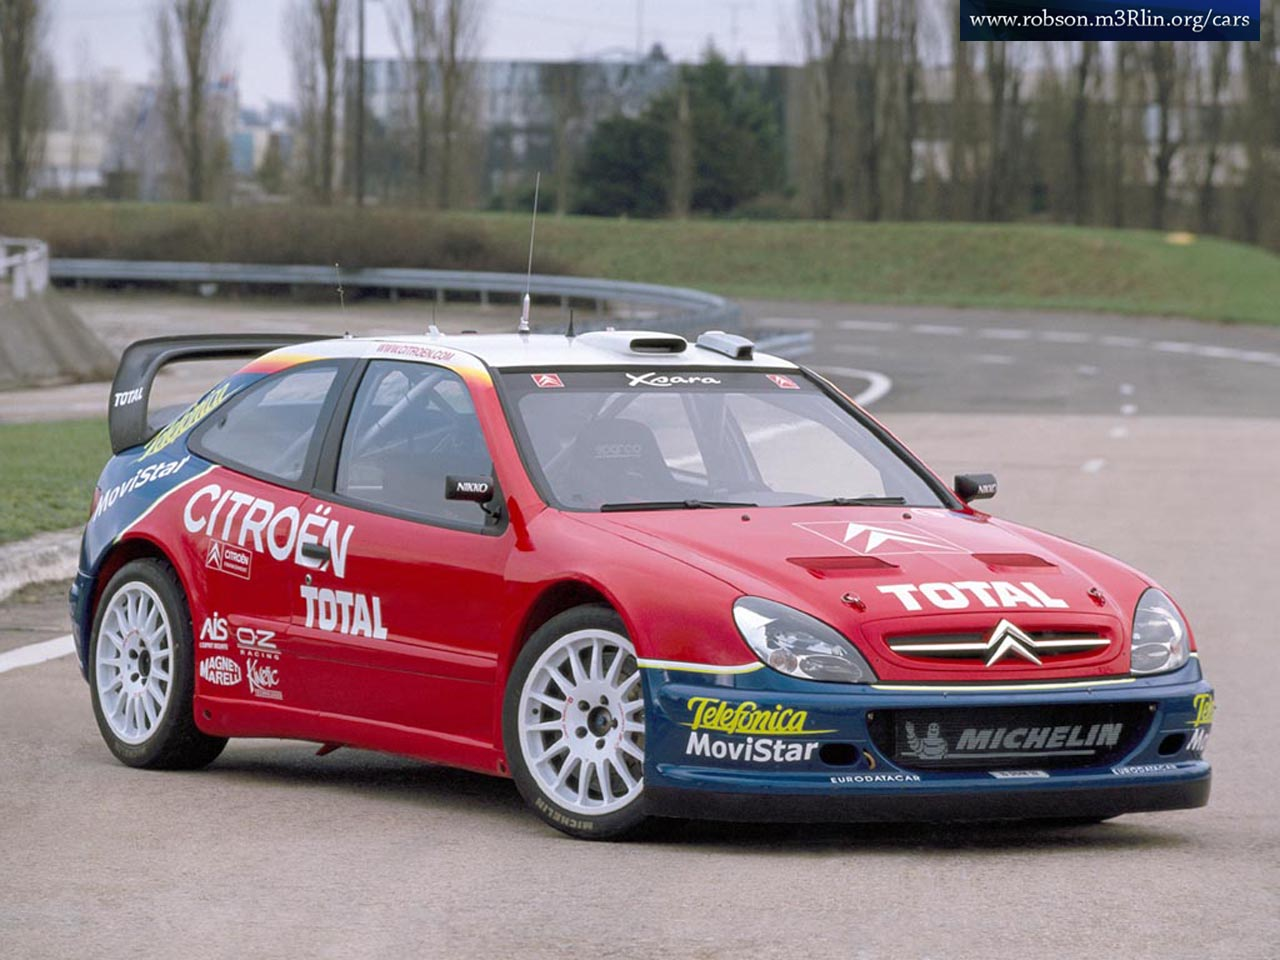 Citroen Xsara Wrc Rally Montecarlo 2006 Wallpaper For Desktop